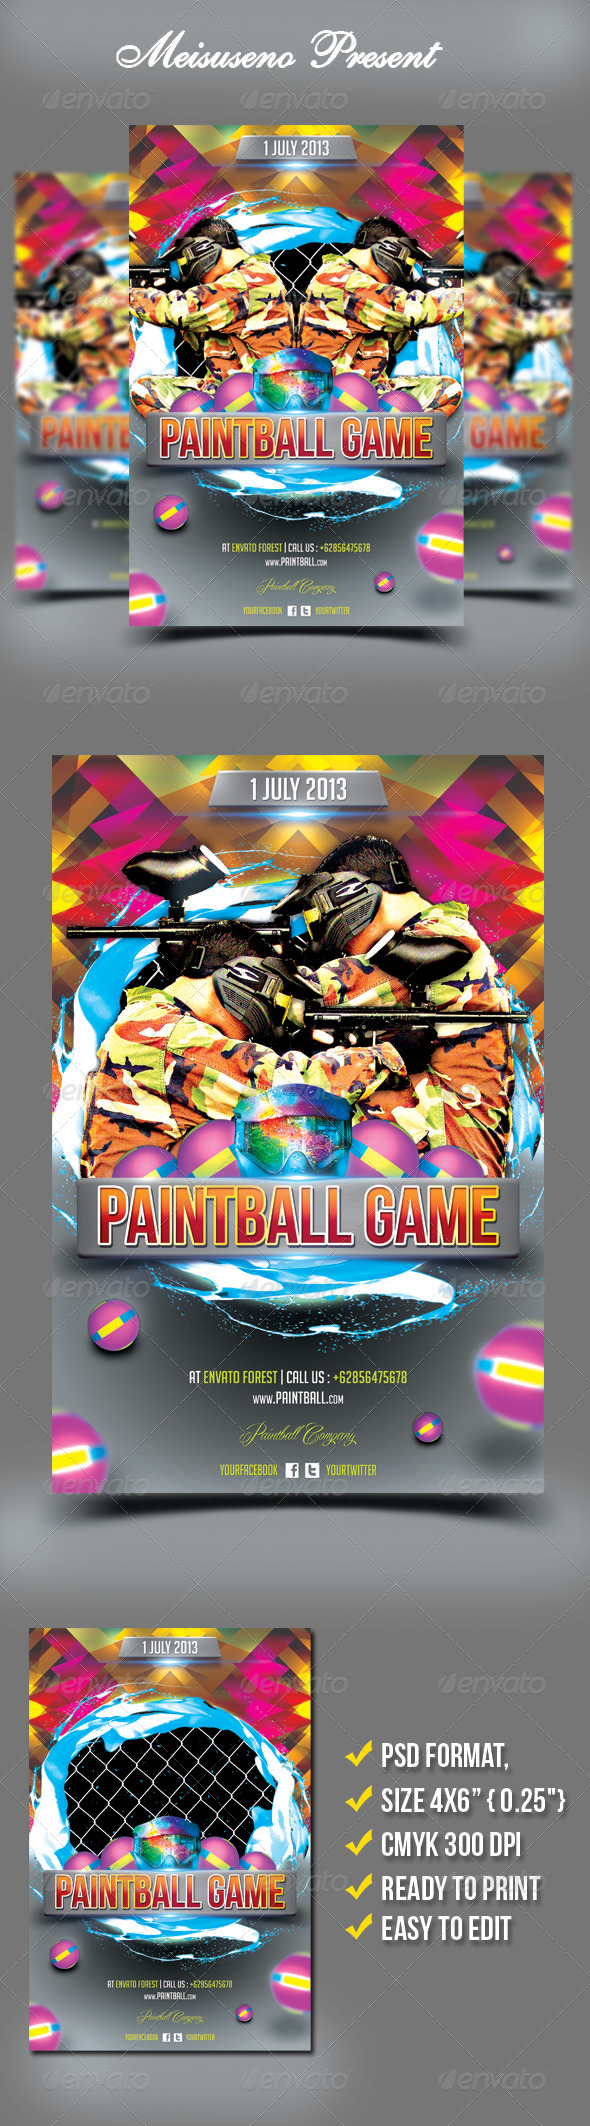 Paintball Game Flyer - Sports Events